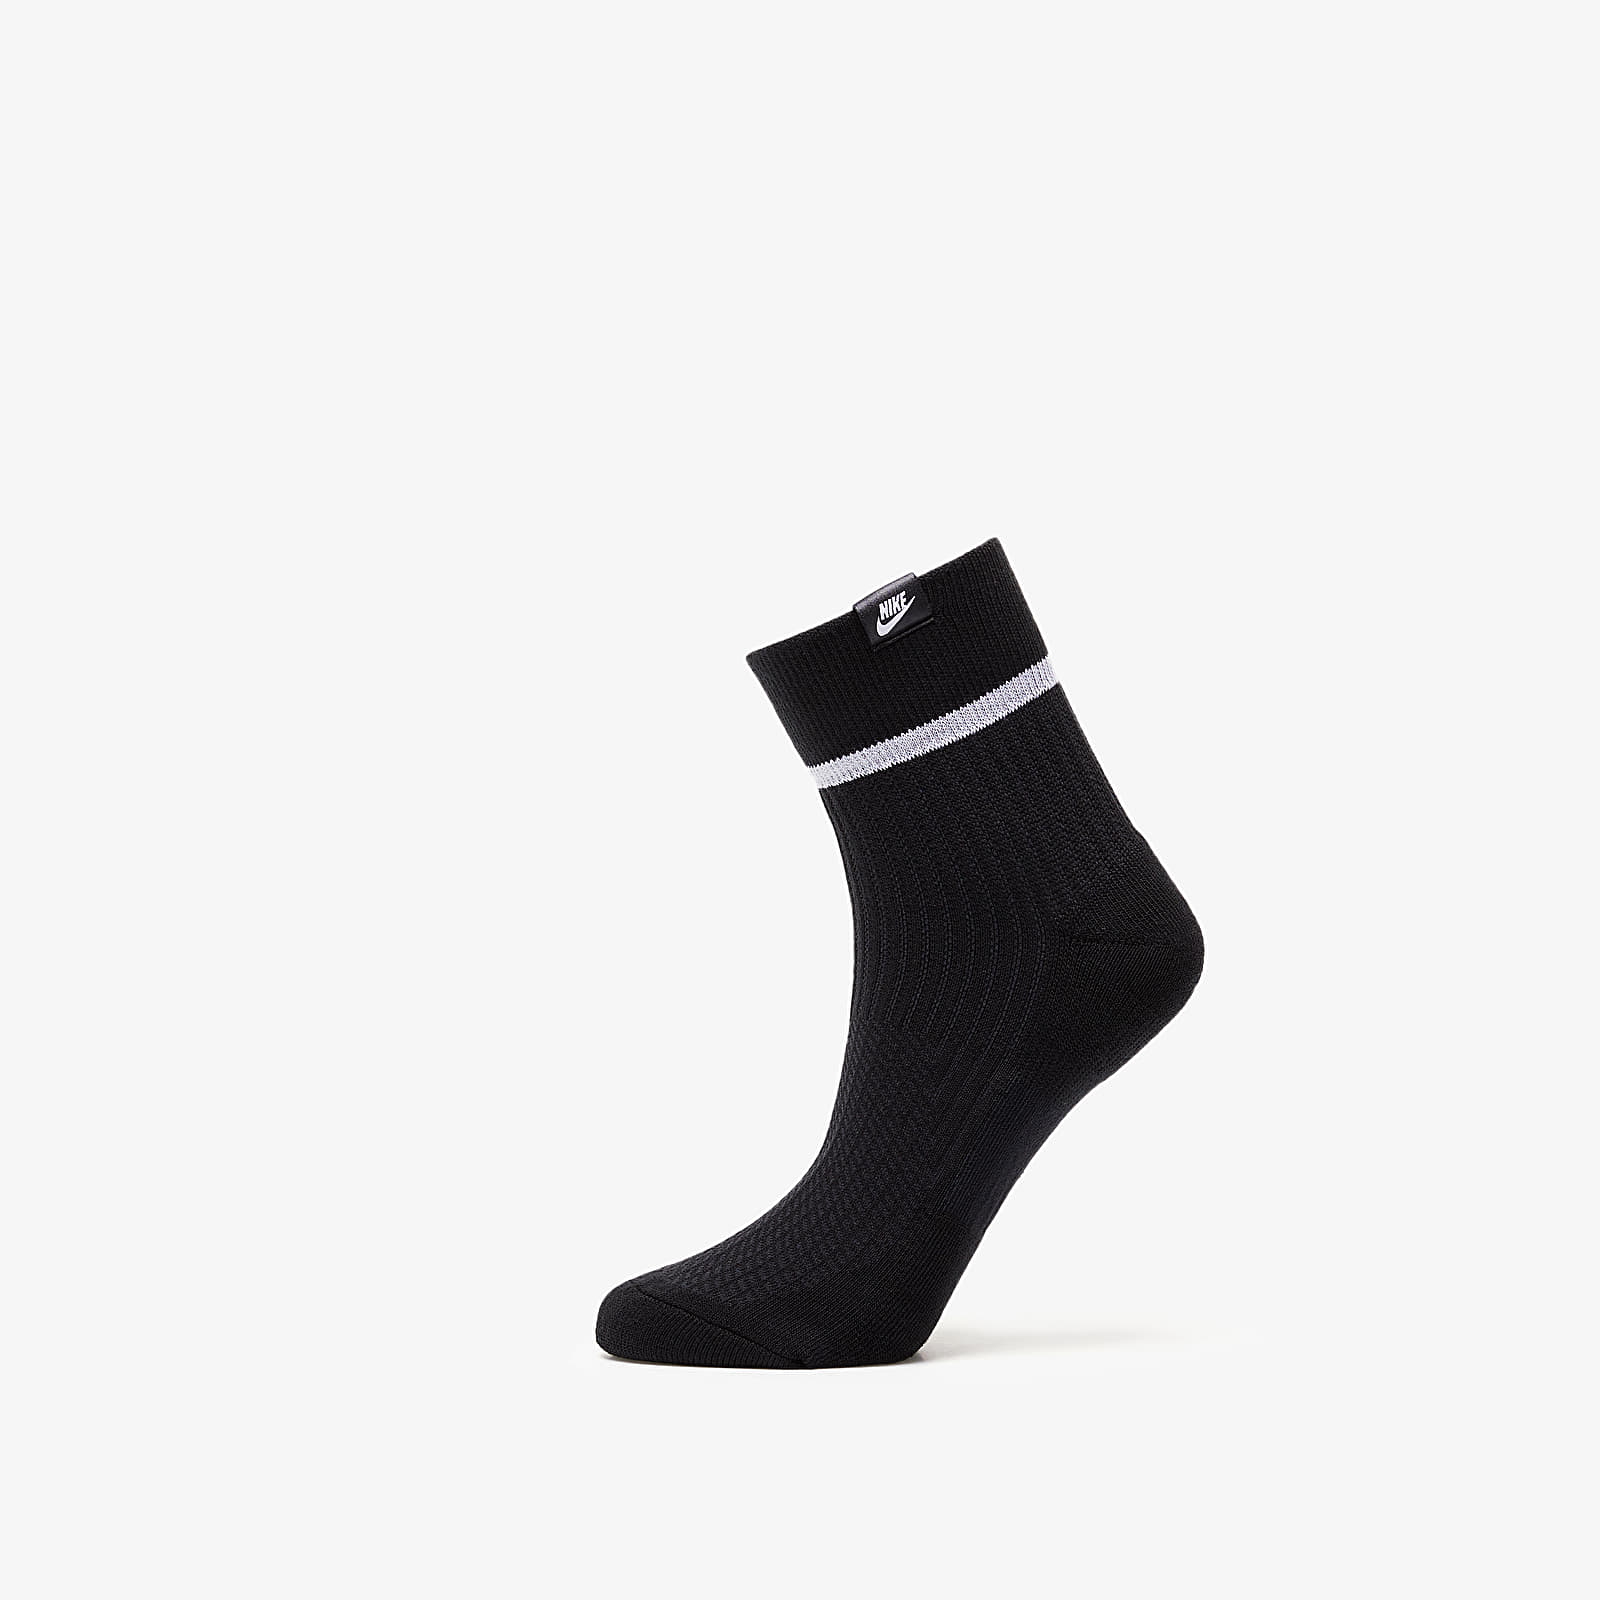 Zoknik Nike Sneaker Essential Ankle Sox 2 Pair Black/ White/ White